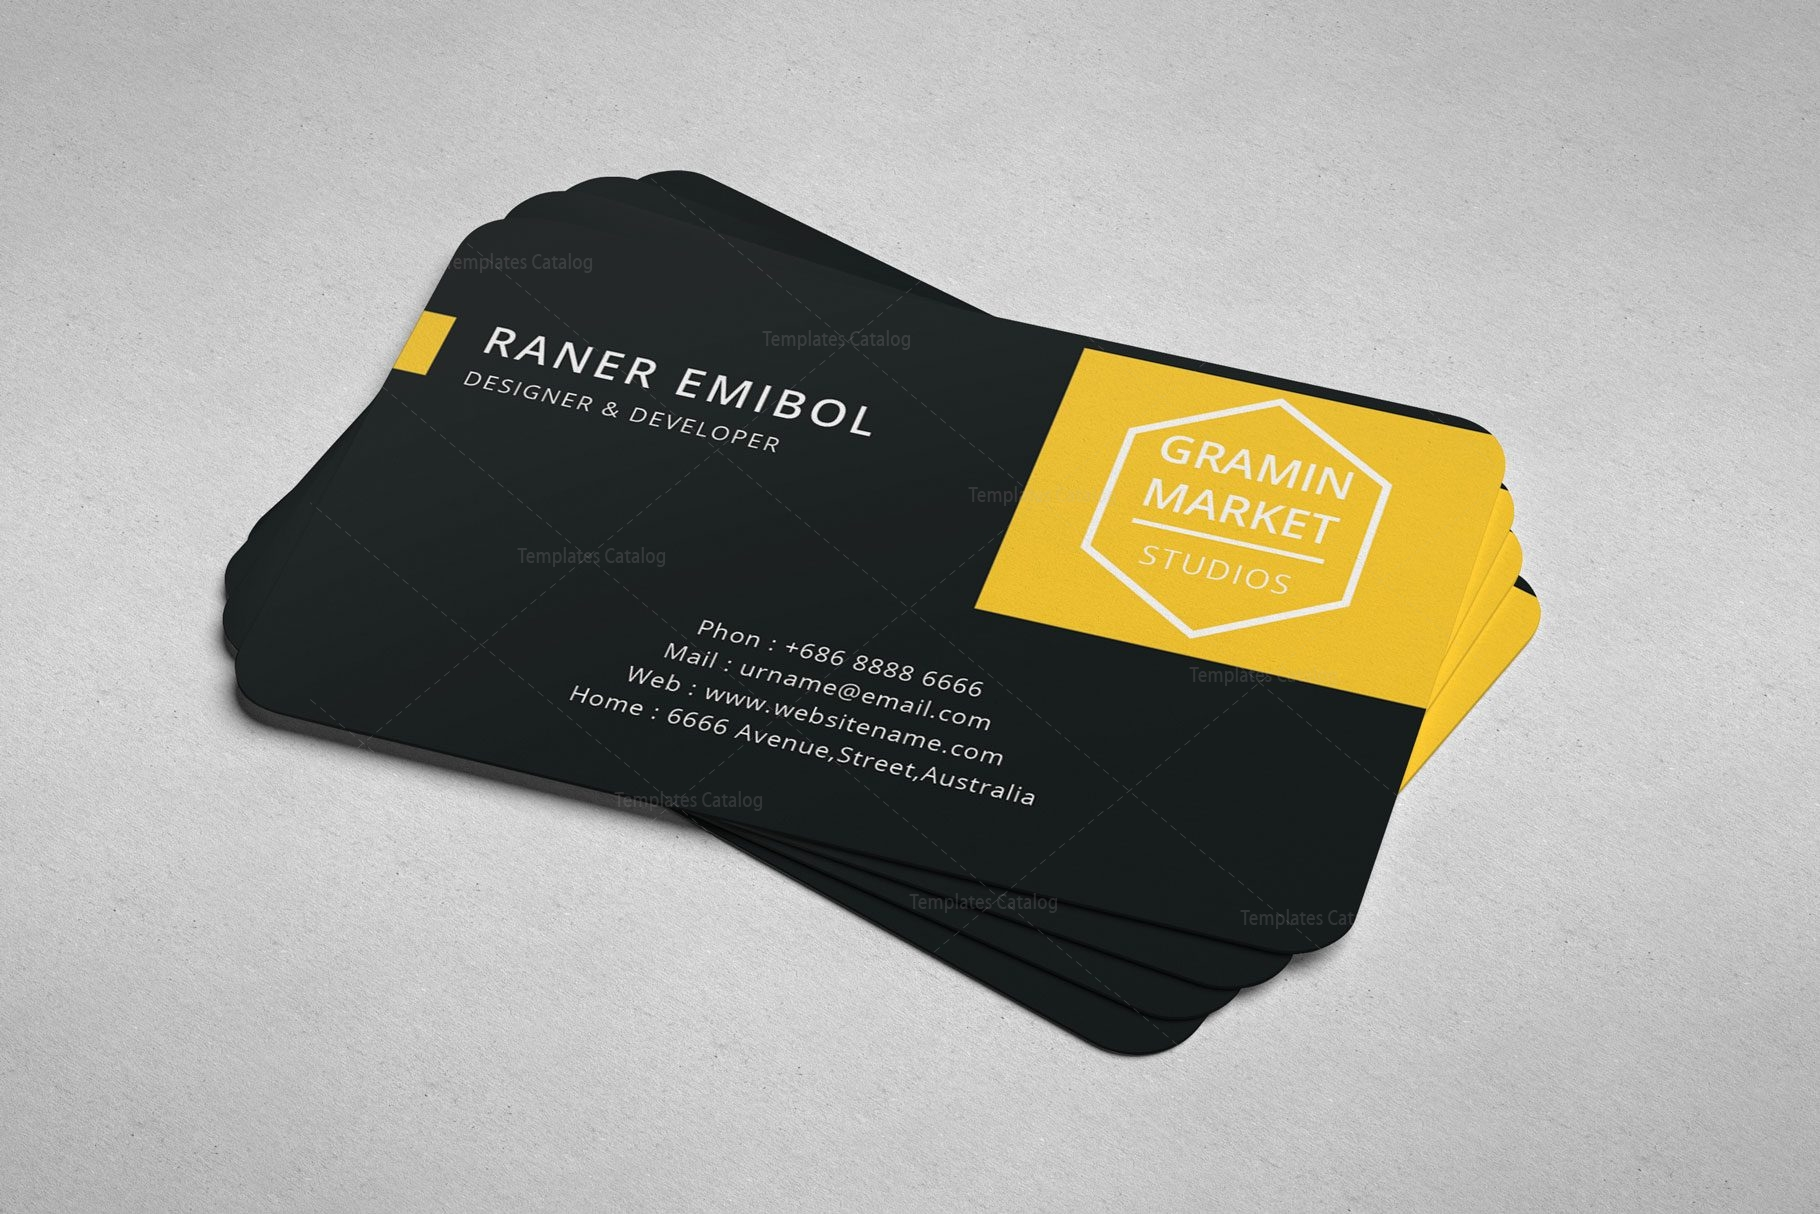 Stylish manager business card design 002254 template catalog stylish manager business card design colourmoves